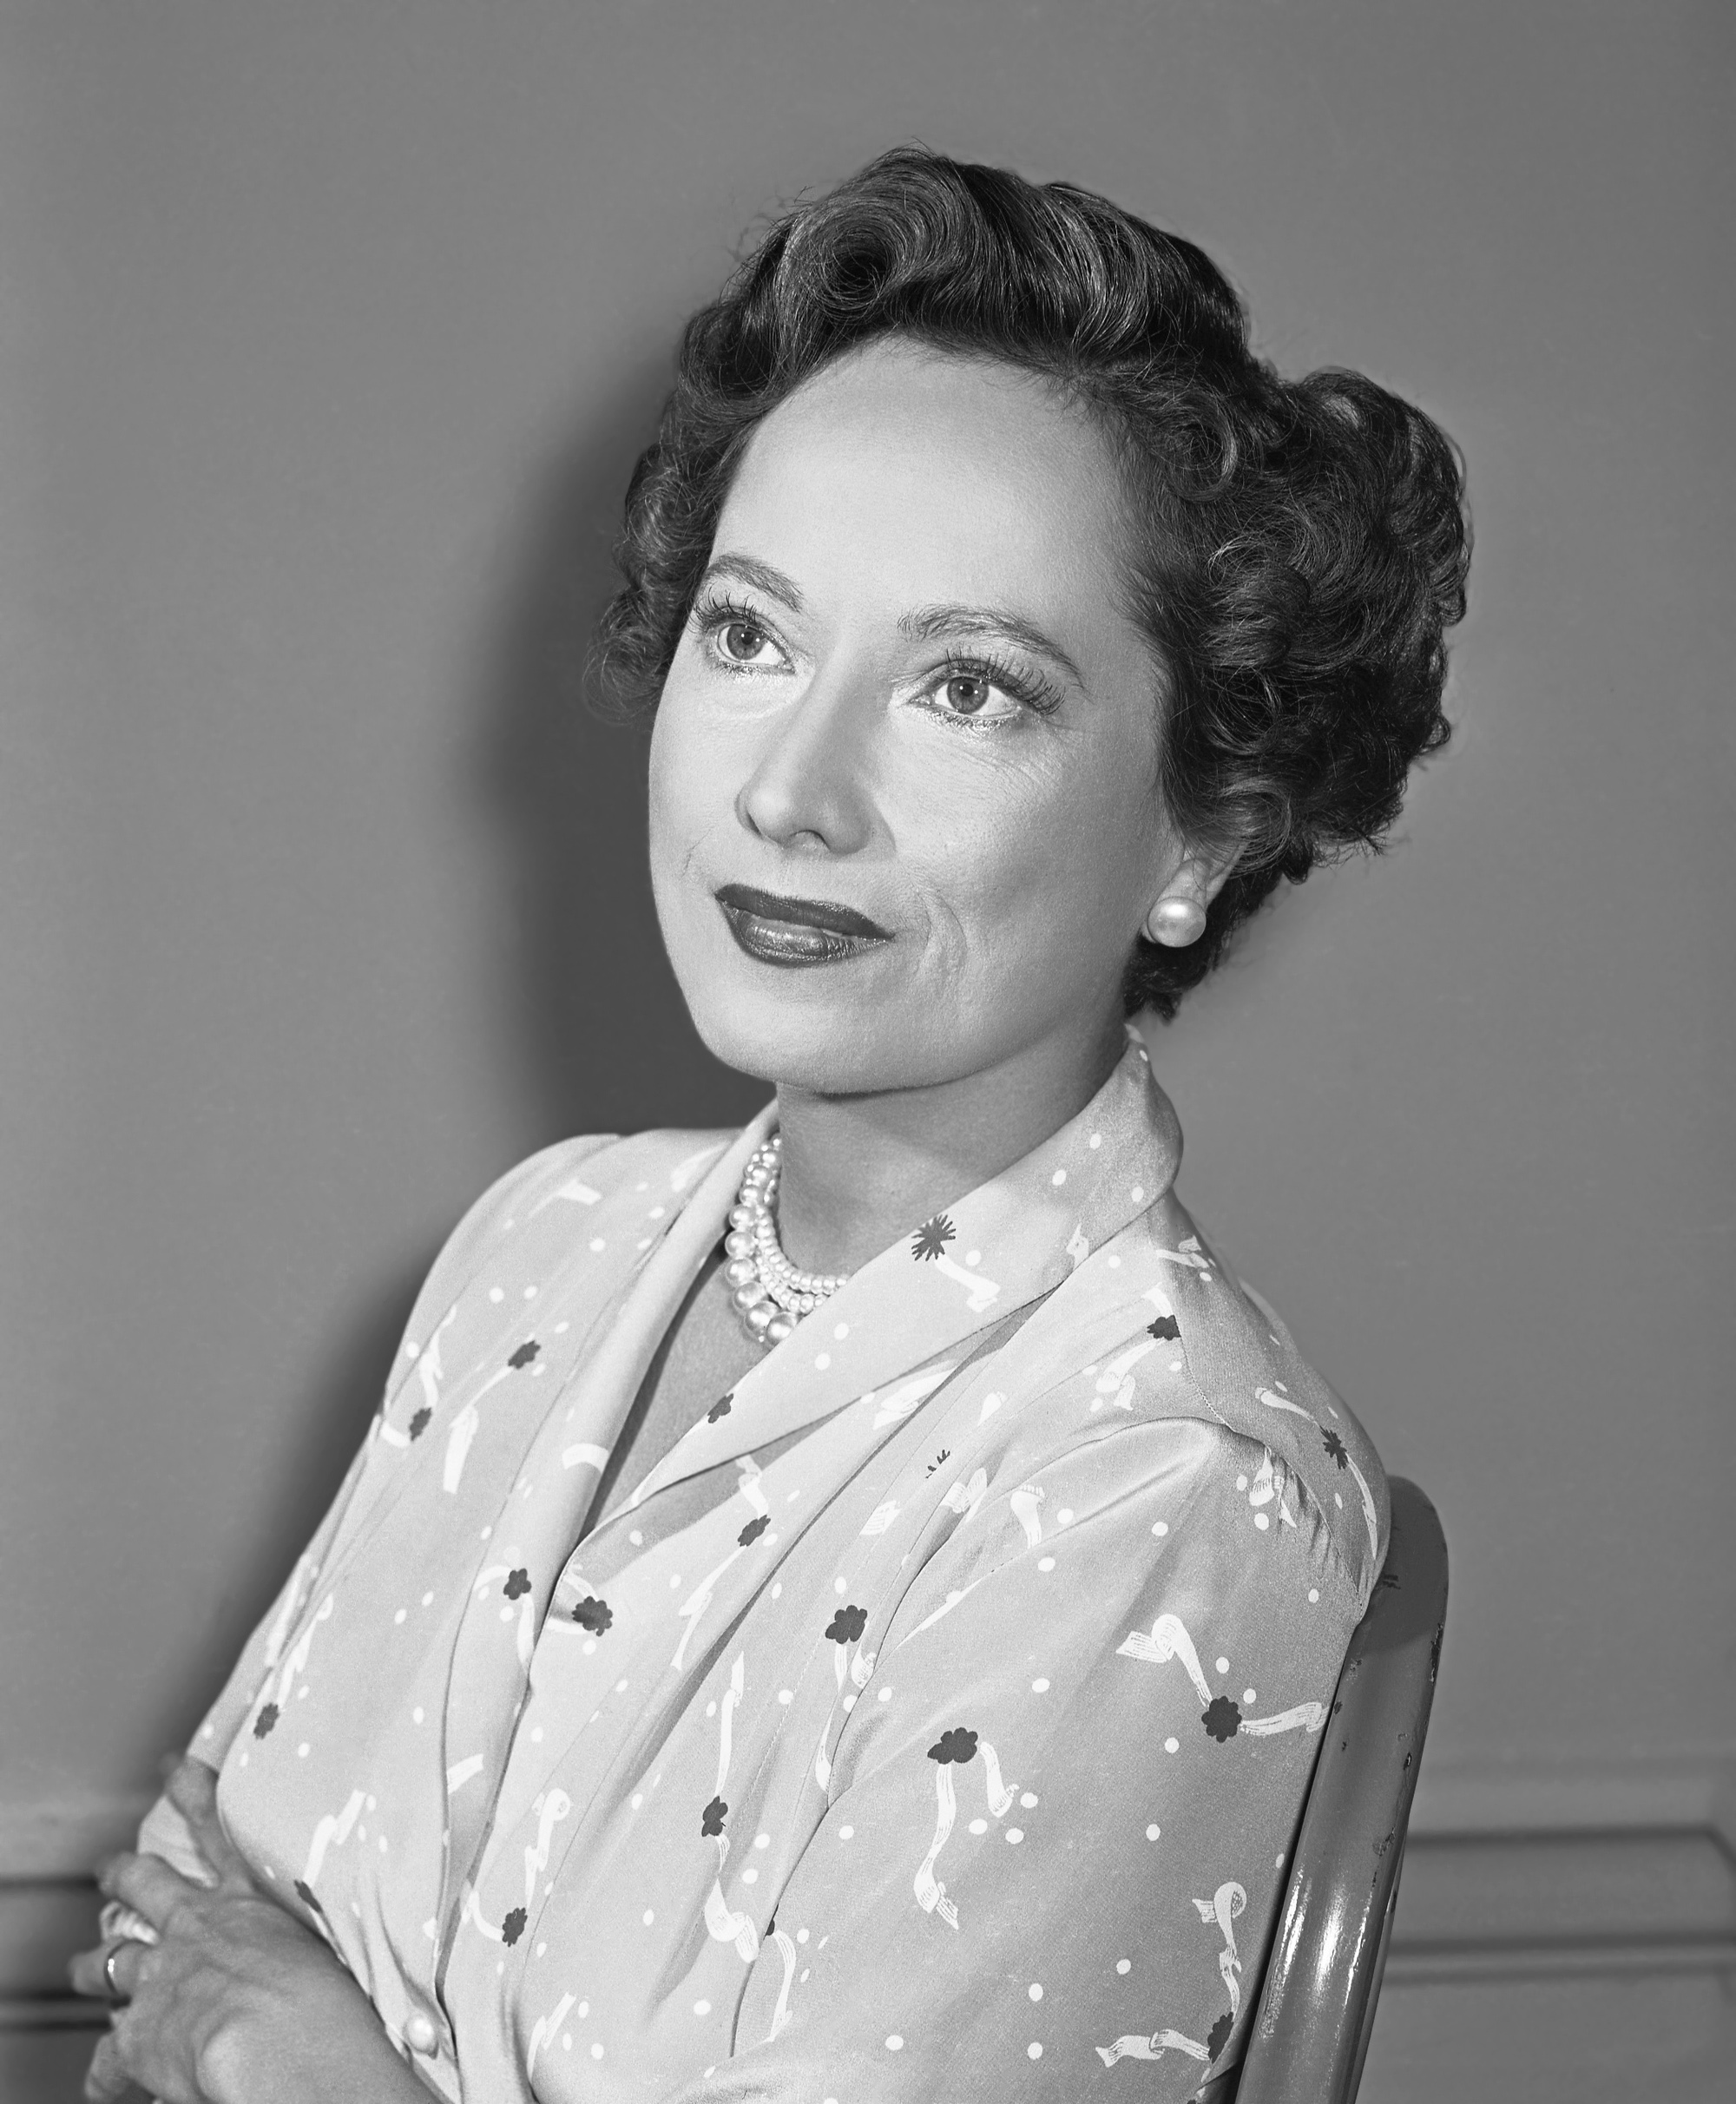 oberon online dating 29 april 2018 robert wolders and merle oberon photos, news and gossip find out more about.